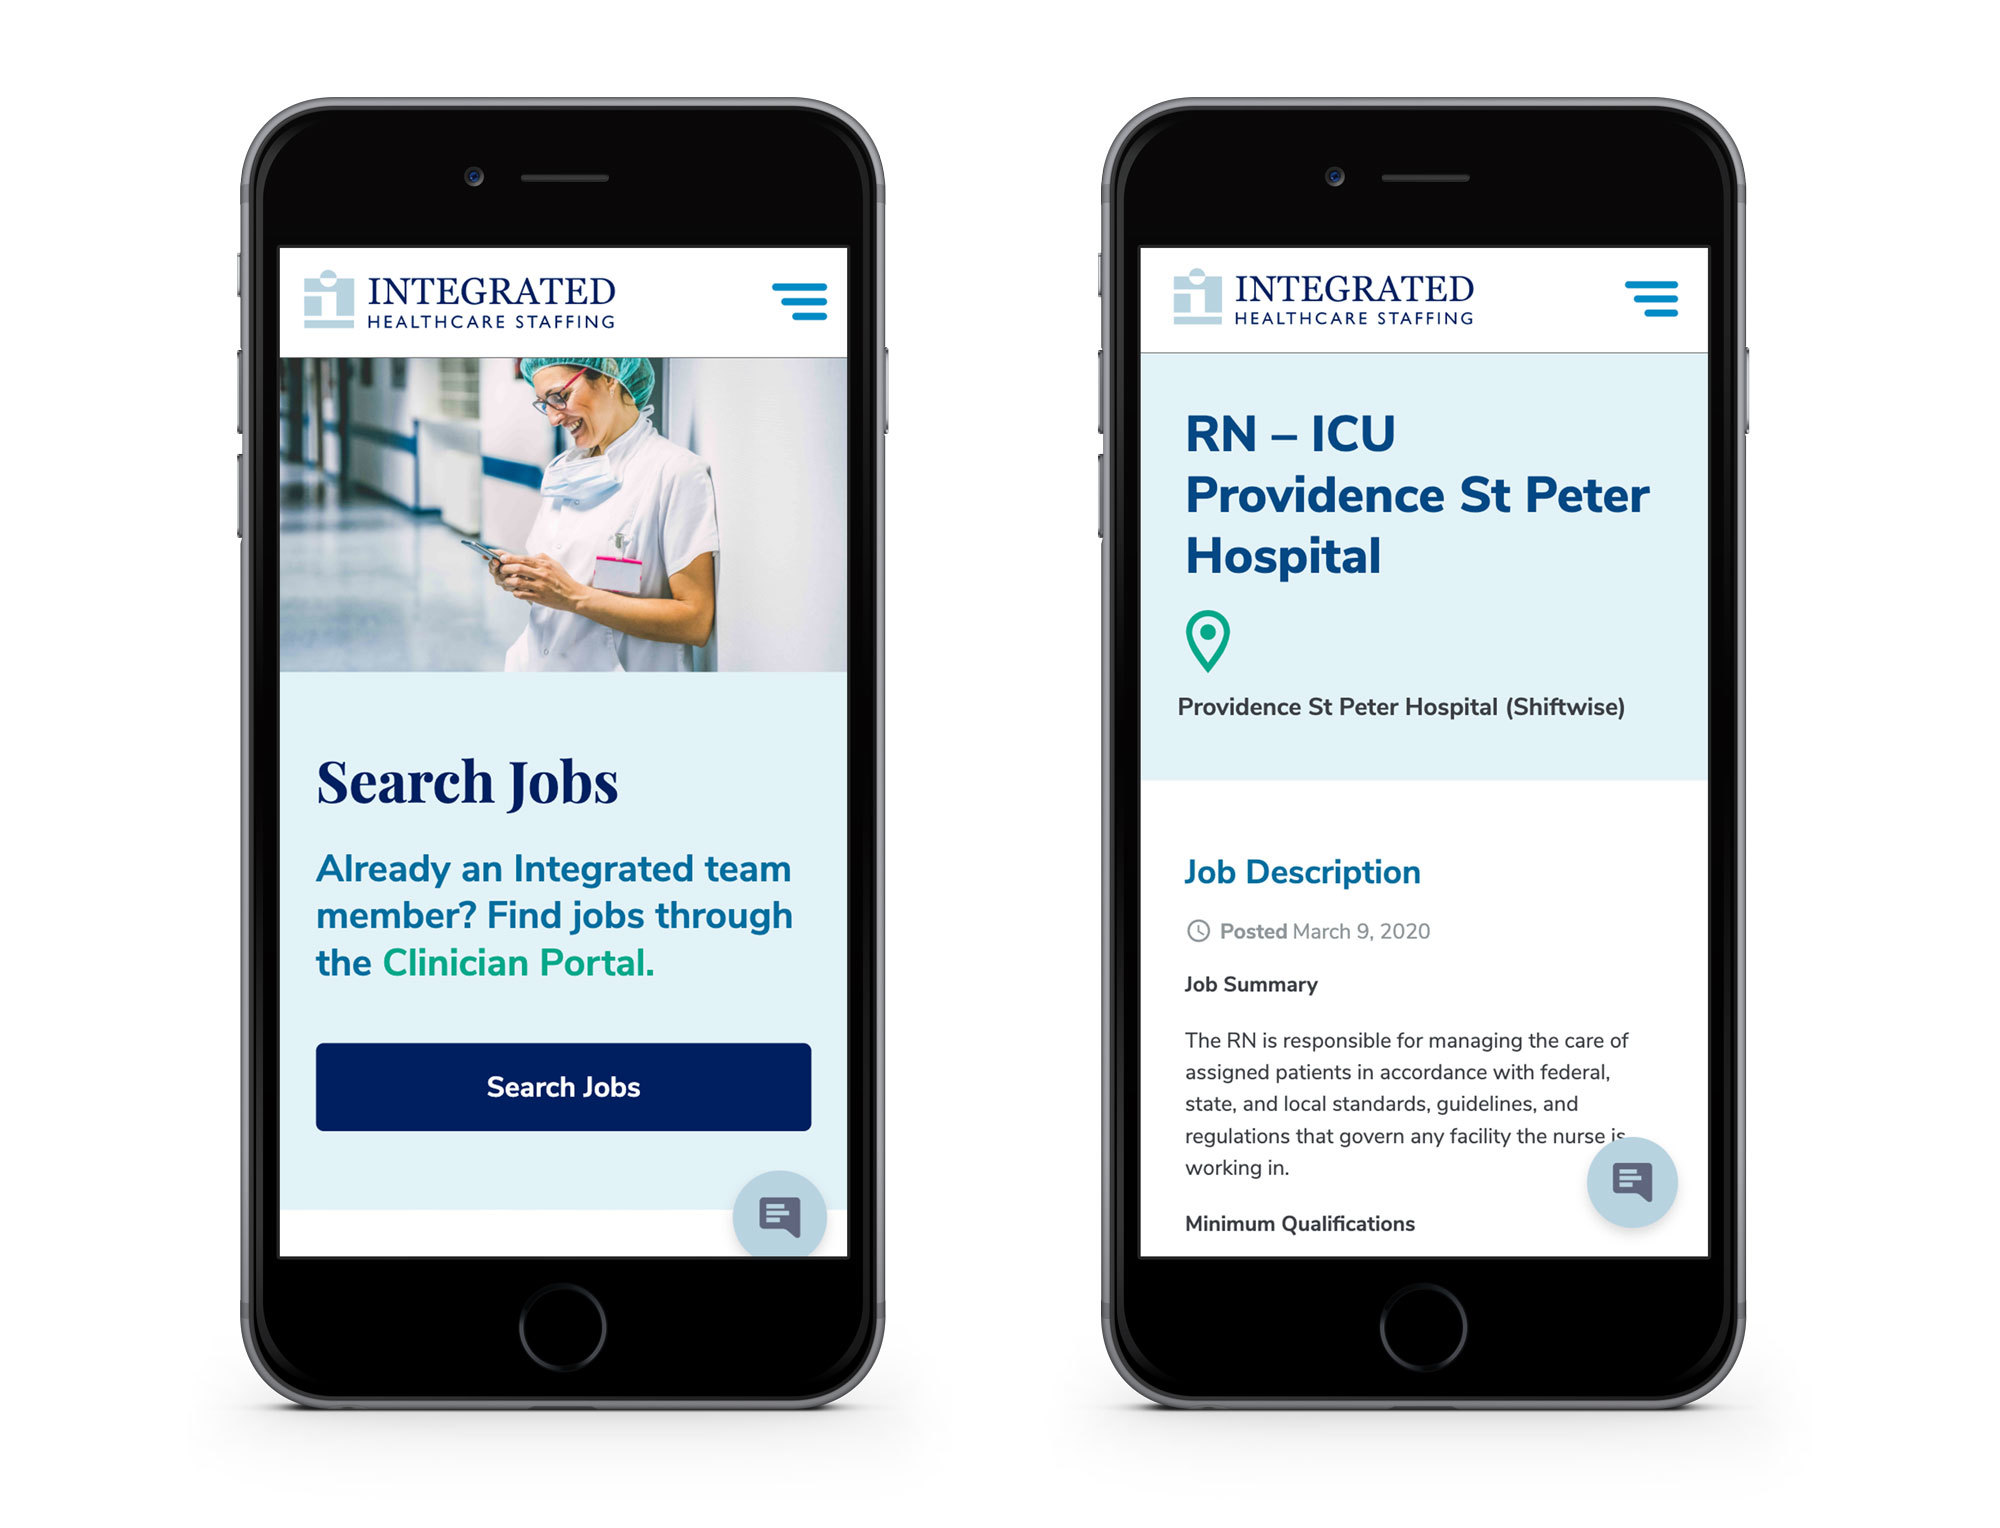 Integrated Healthcare Staffing - Mobile Phone Job Search and Results Page